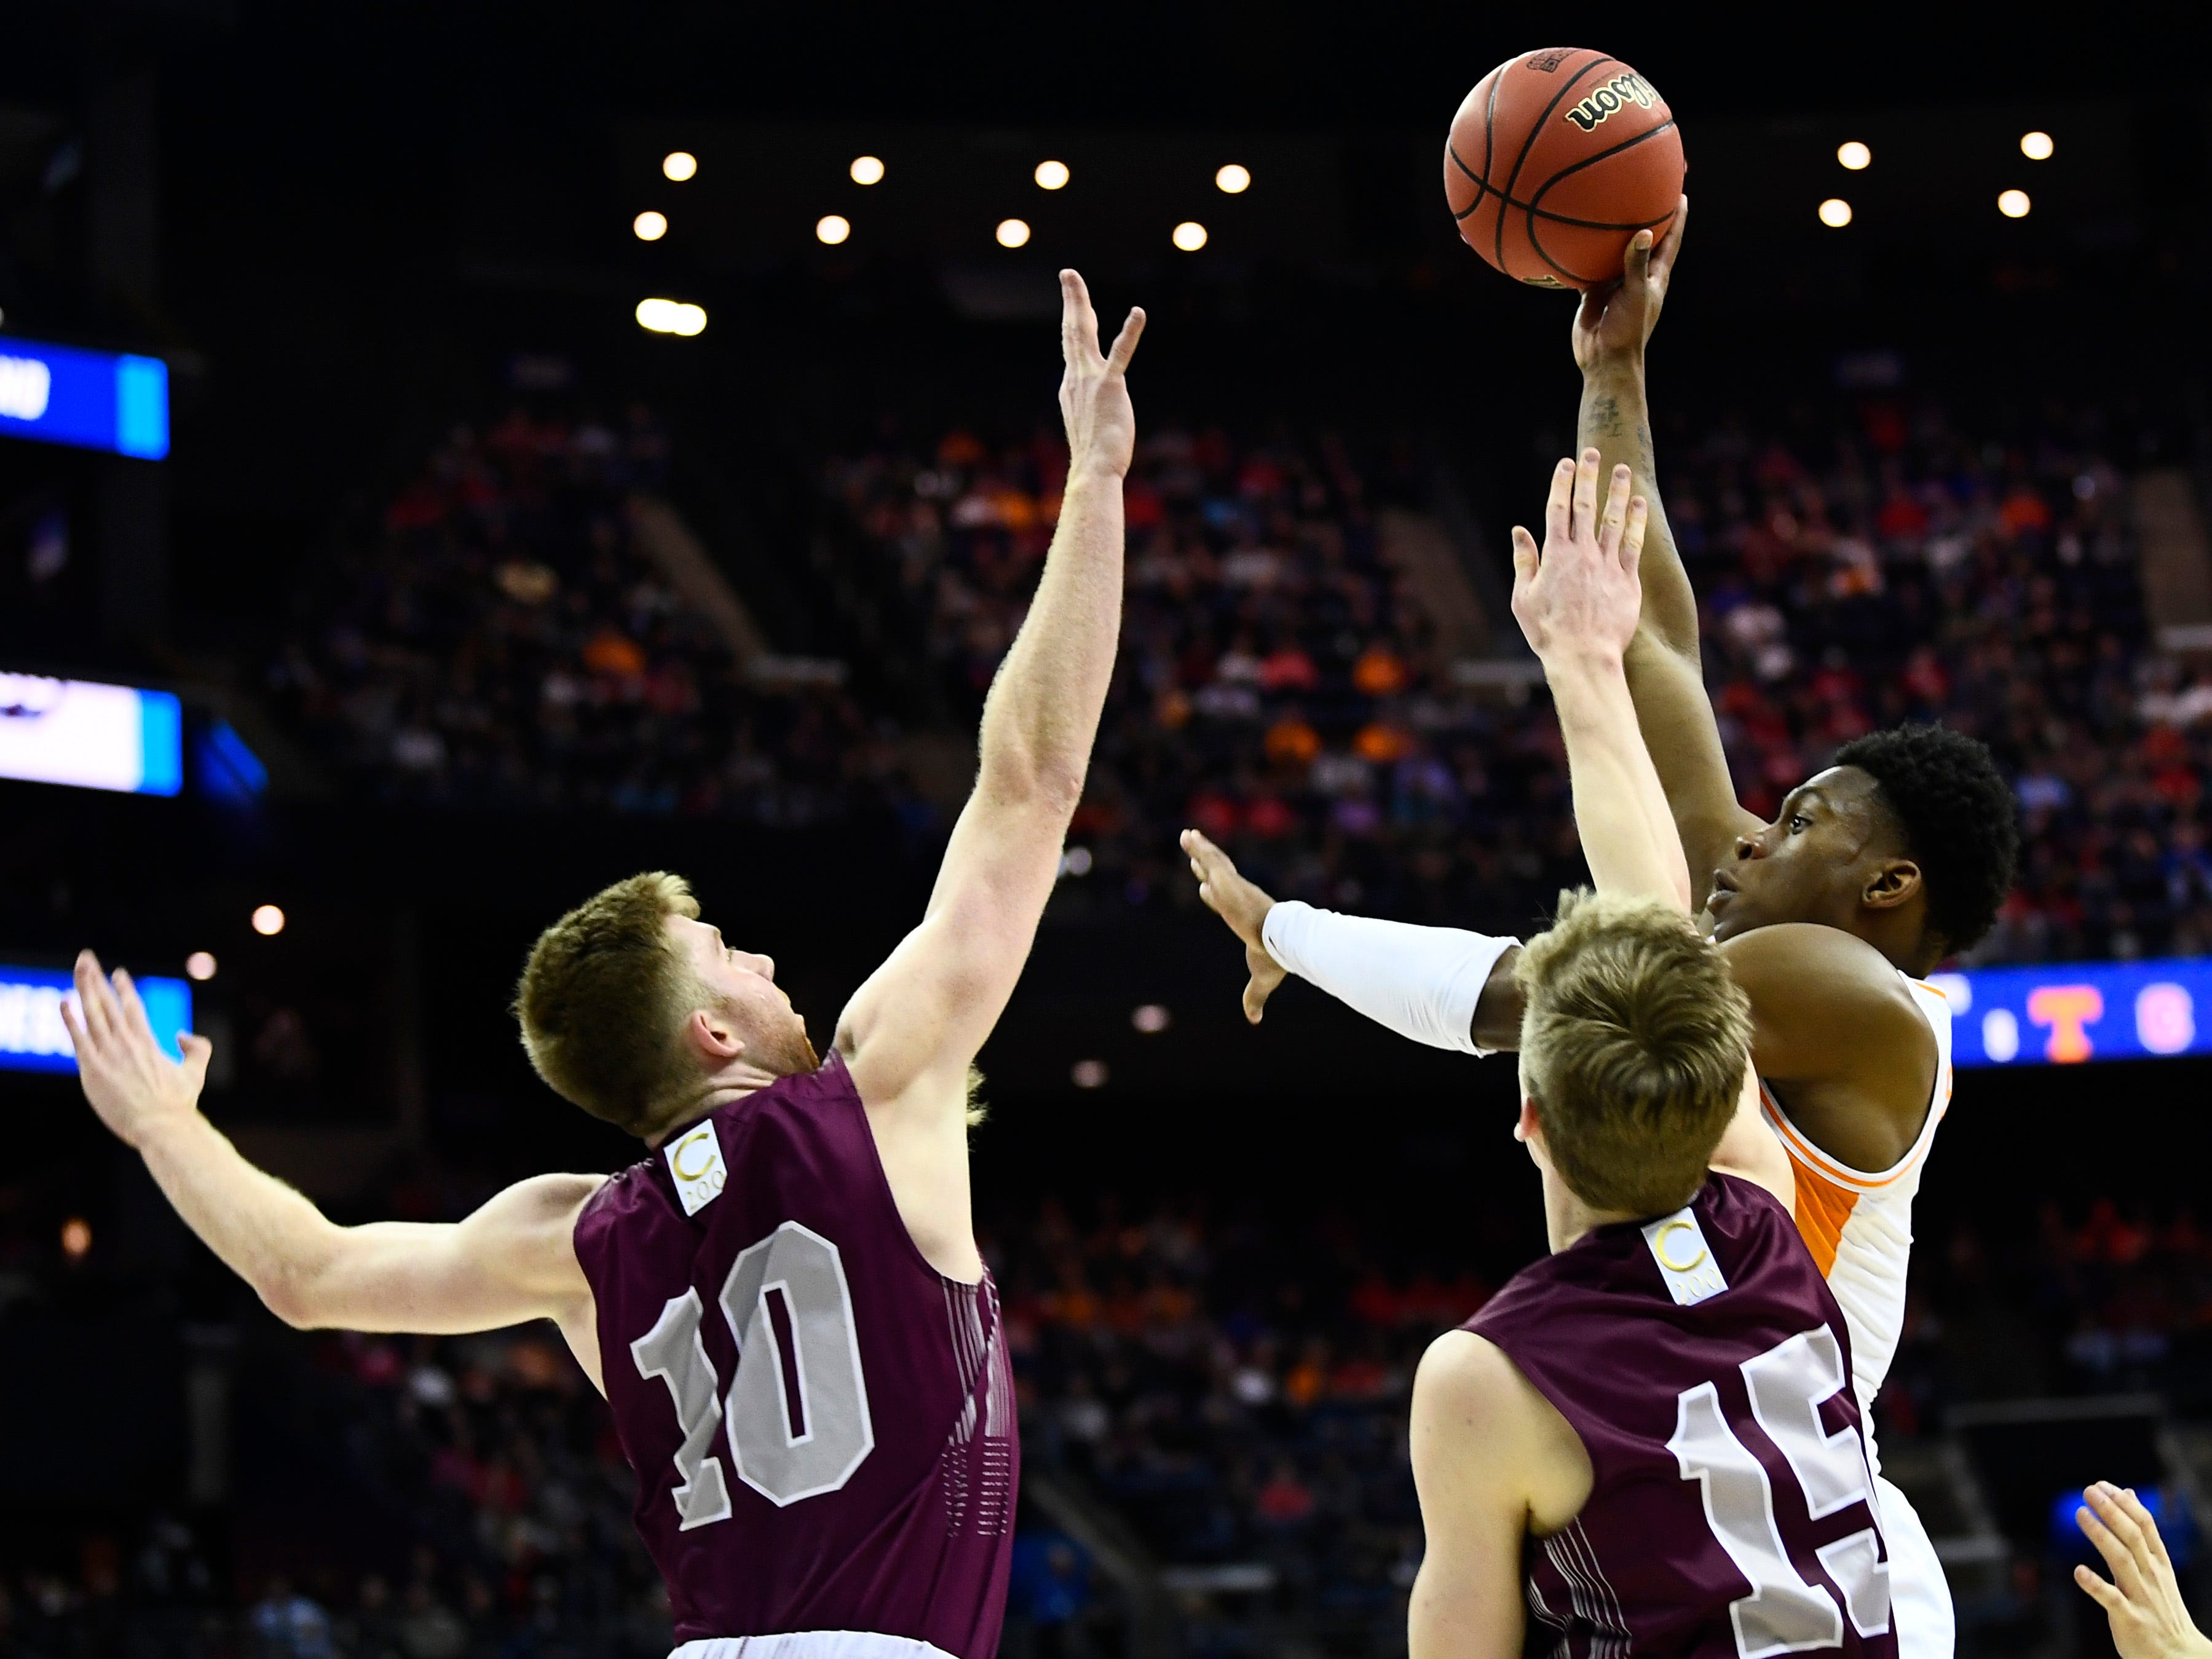 Tennessee guard Admiral Schofield (5) shoots over Colgate forward Will Rayman (10) and guard Tucker Richardson (15) during their first round game of the NCAA Tournament at Nationwide Arena in Columbus, Ohio, on Friday, March 22, 2019.